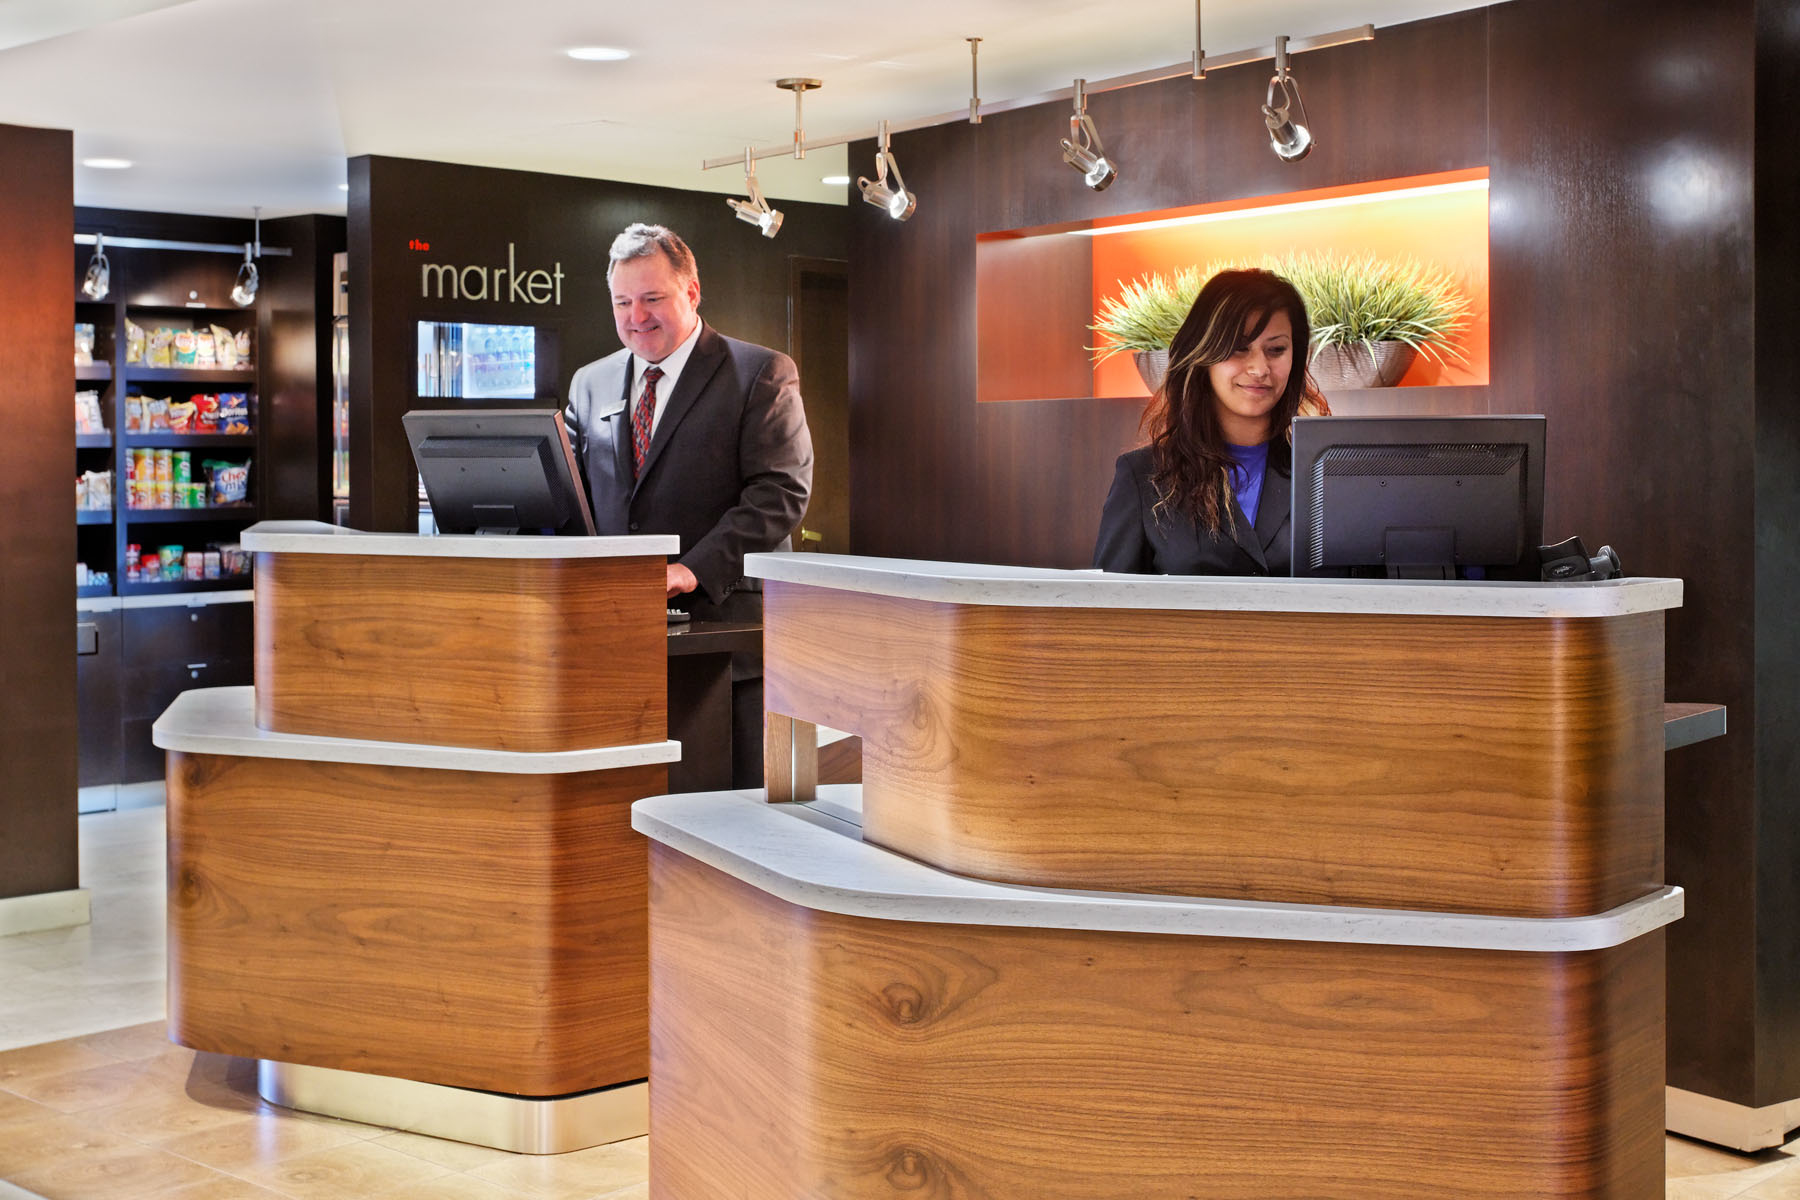 Courtyard by Marriott Mobile image 1